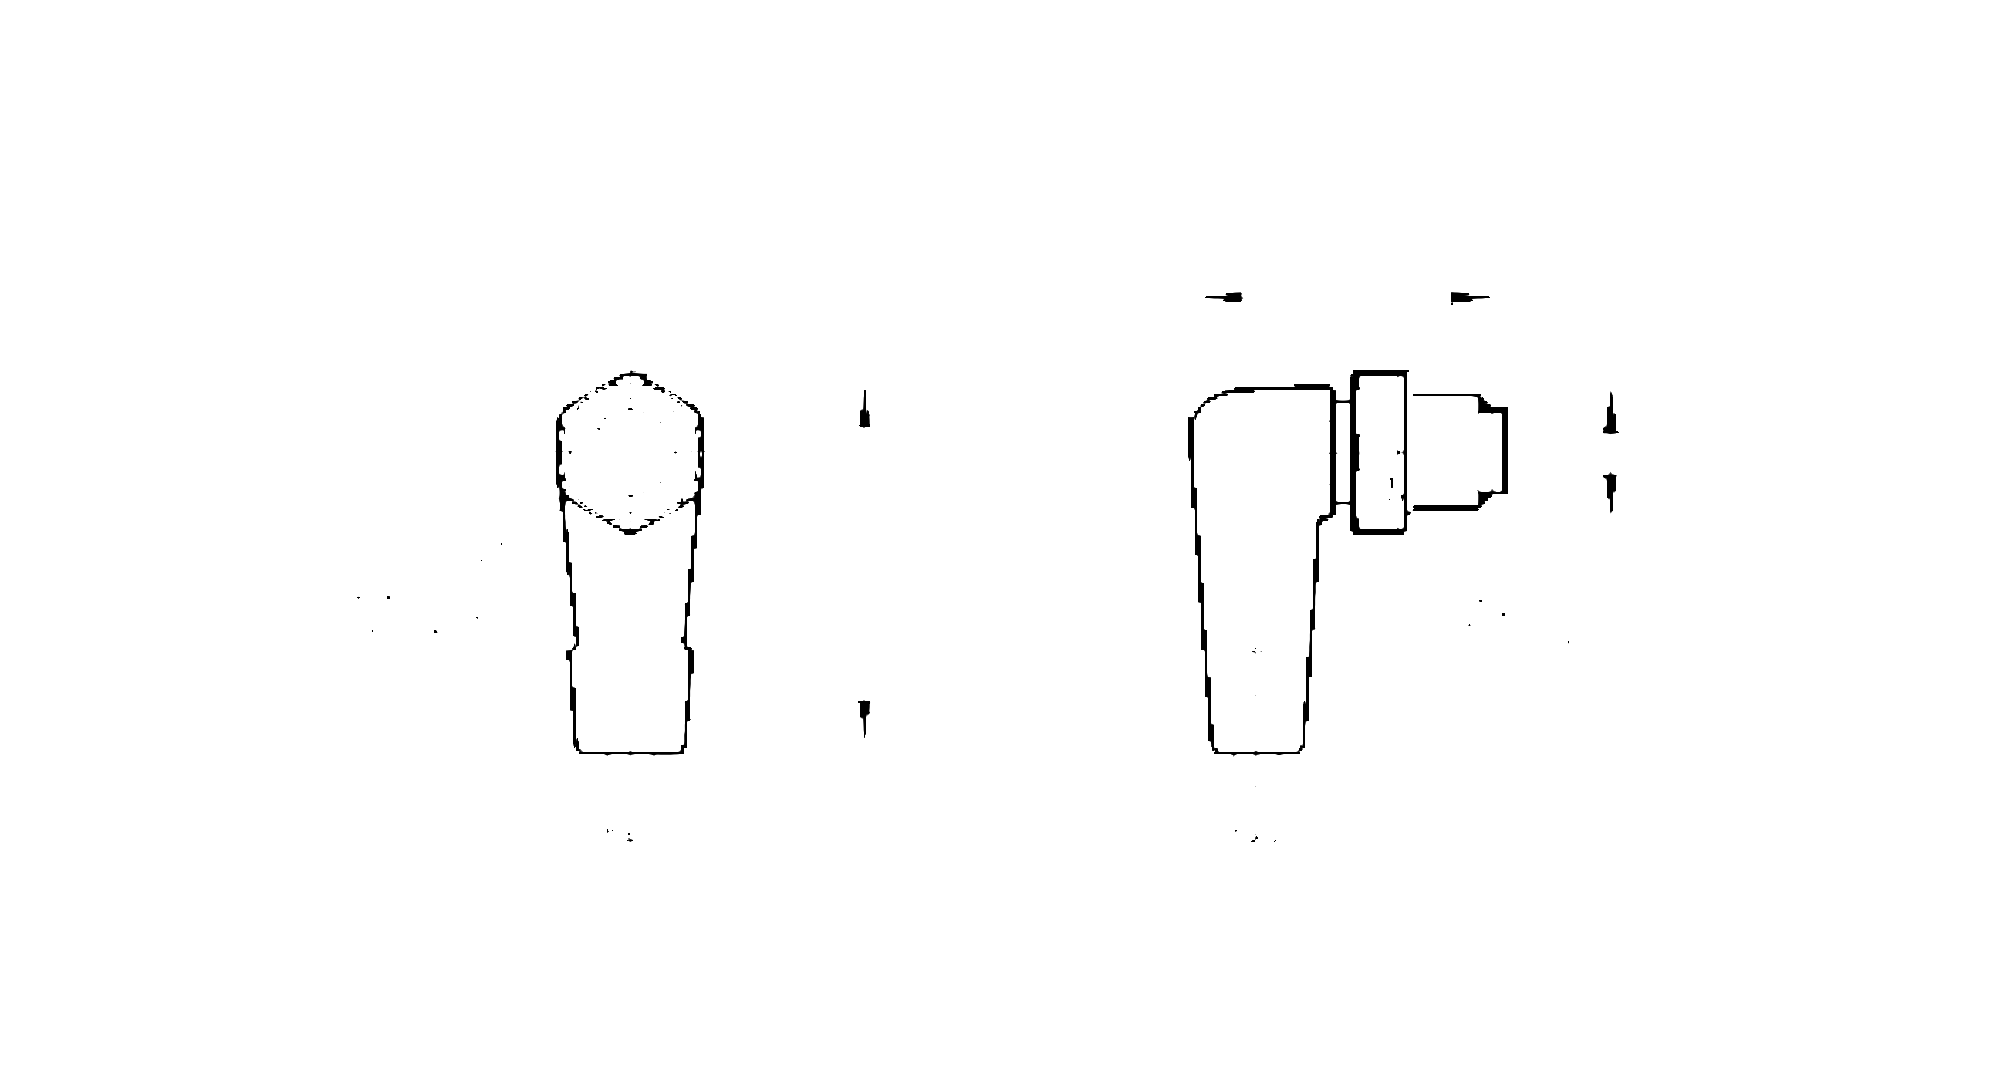 evf088 - connecting cable with plug